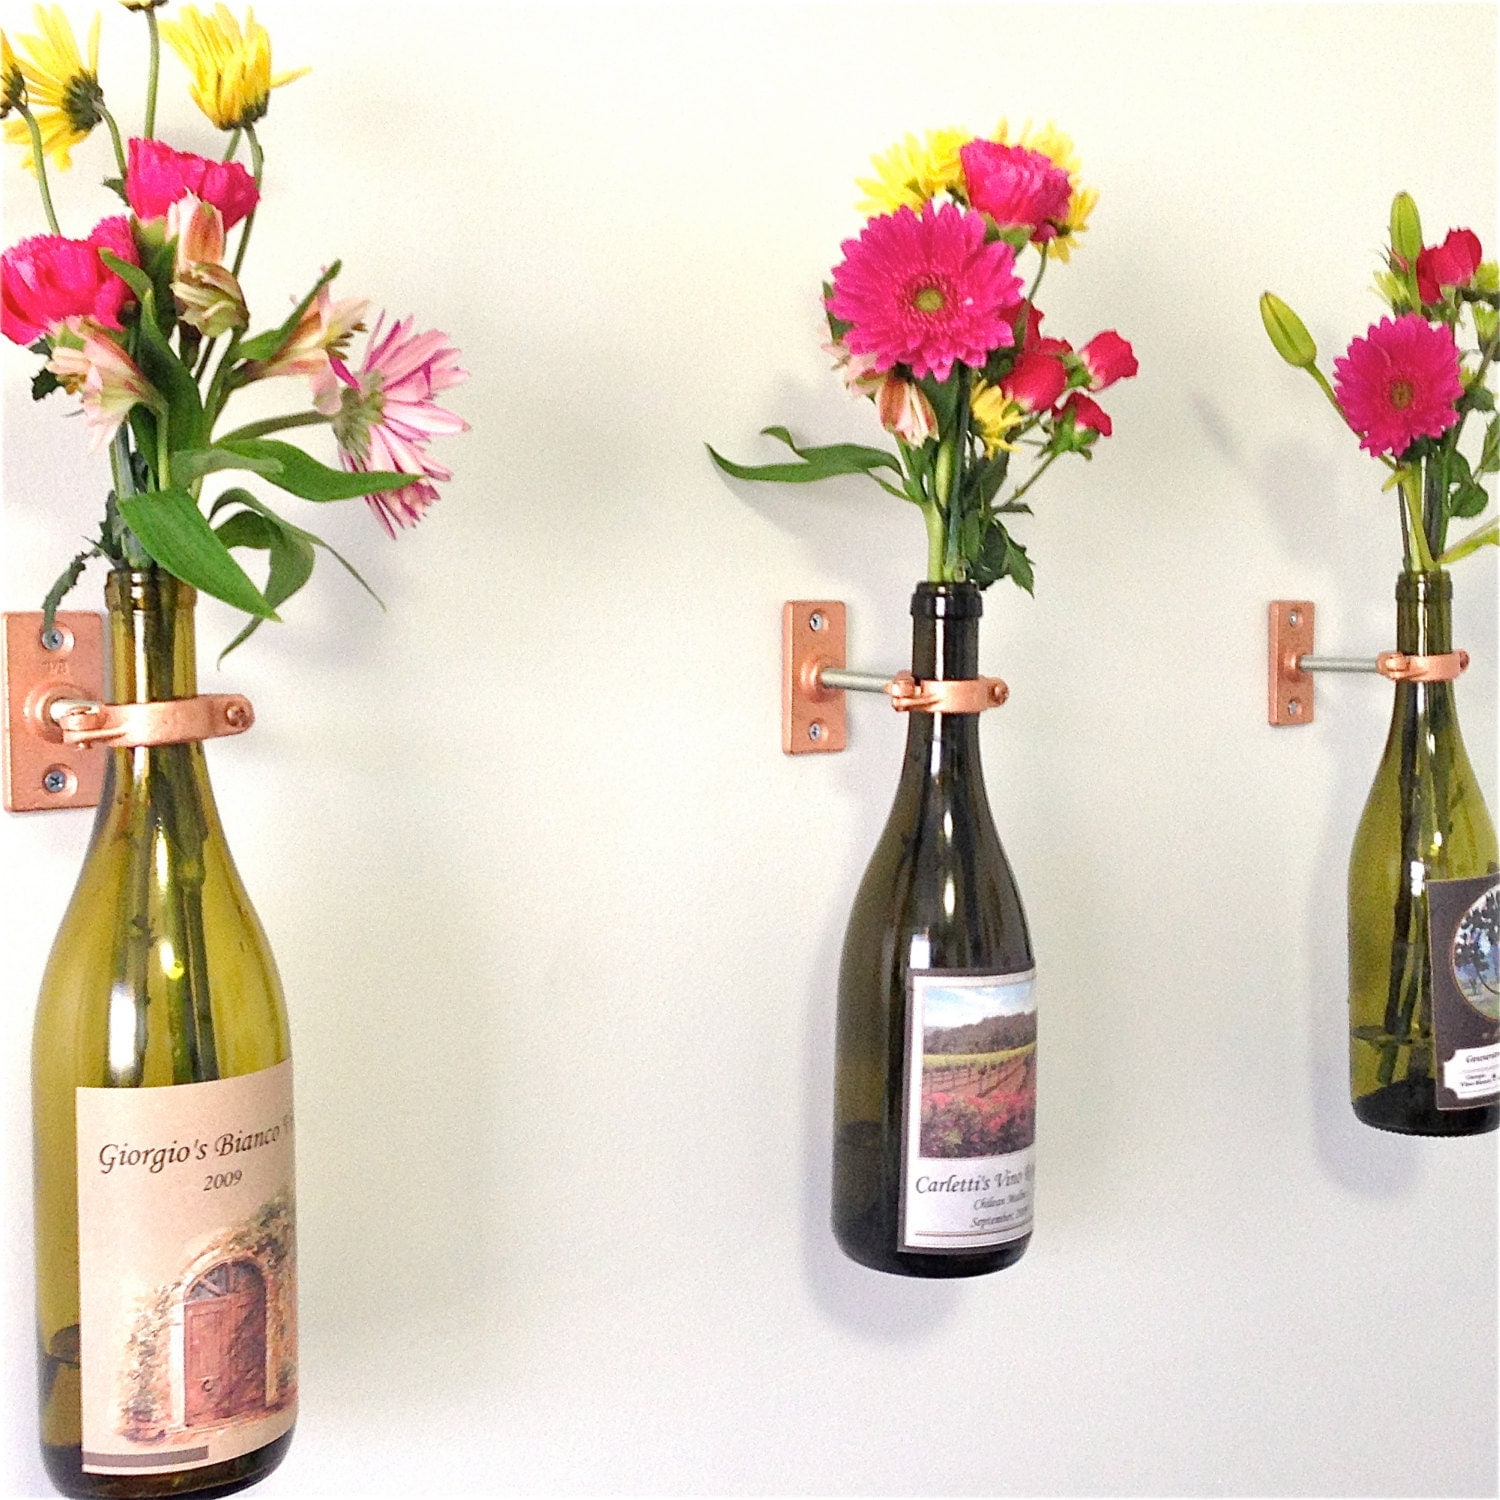 Wall vases for flowers - Hardware Only 20 Wine Bottle Wall Flower Vase Kits Copper Silver Or Iron Hardware Diy Hostess Gift